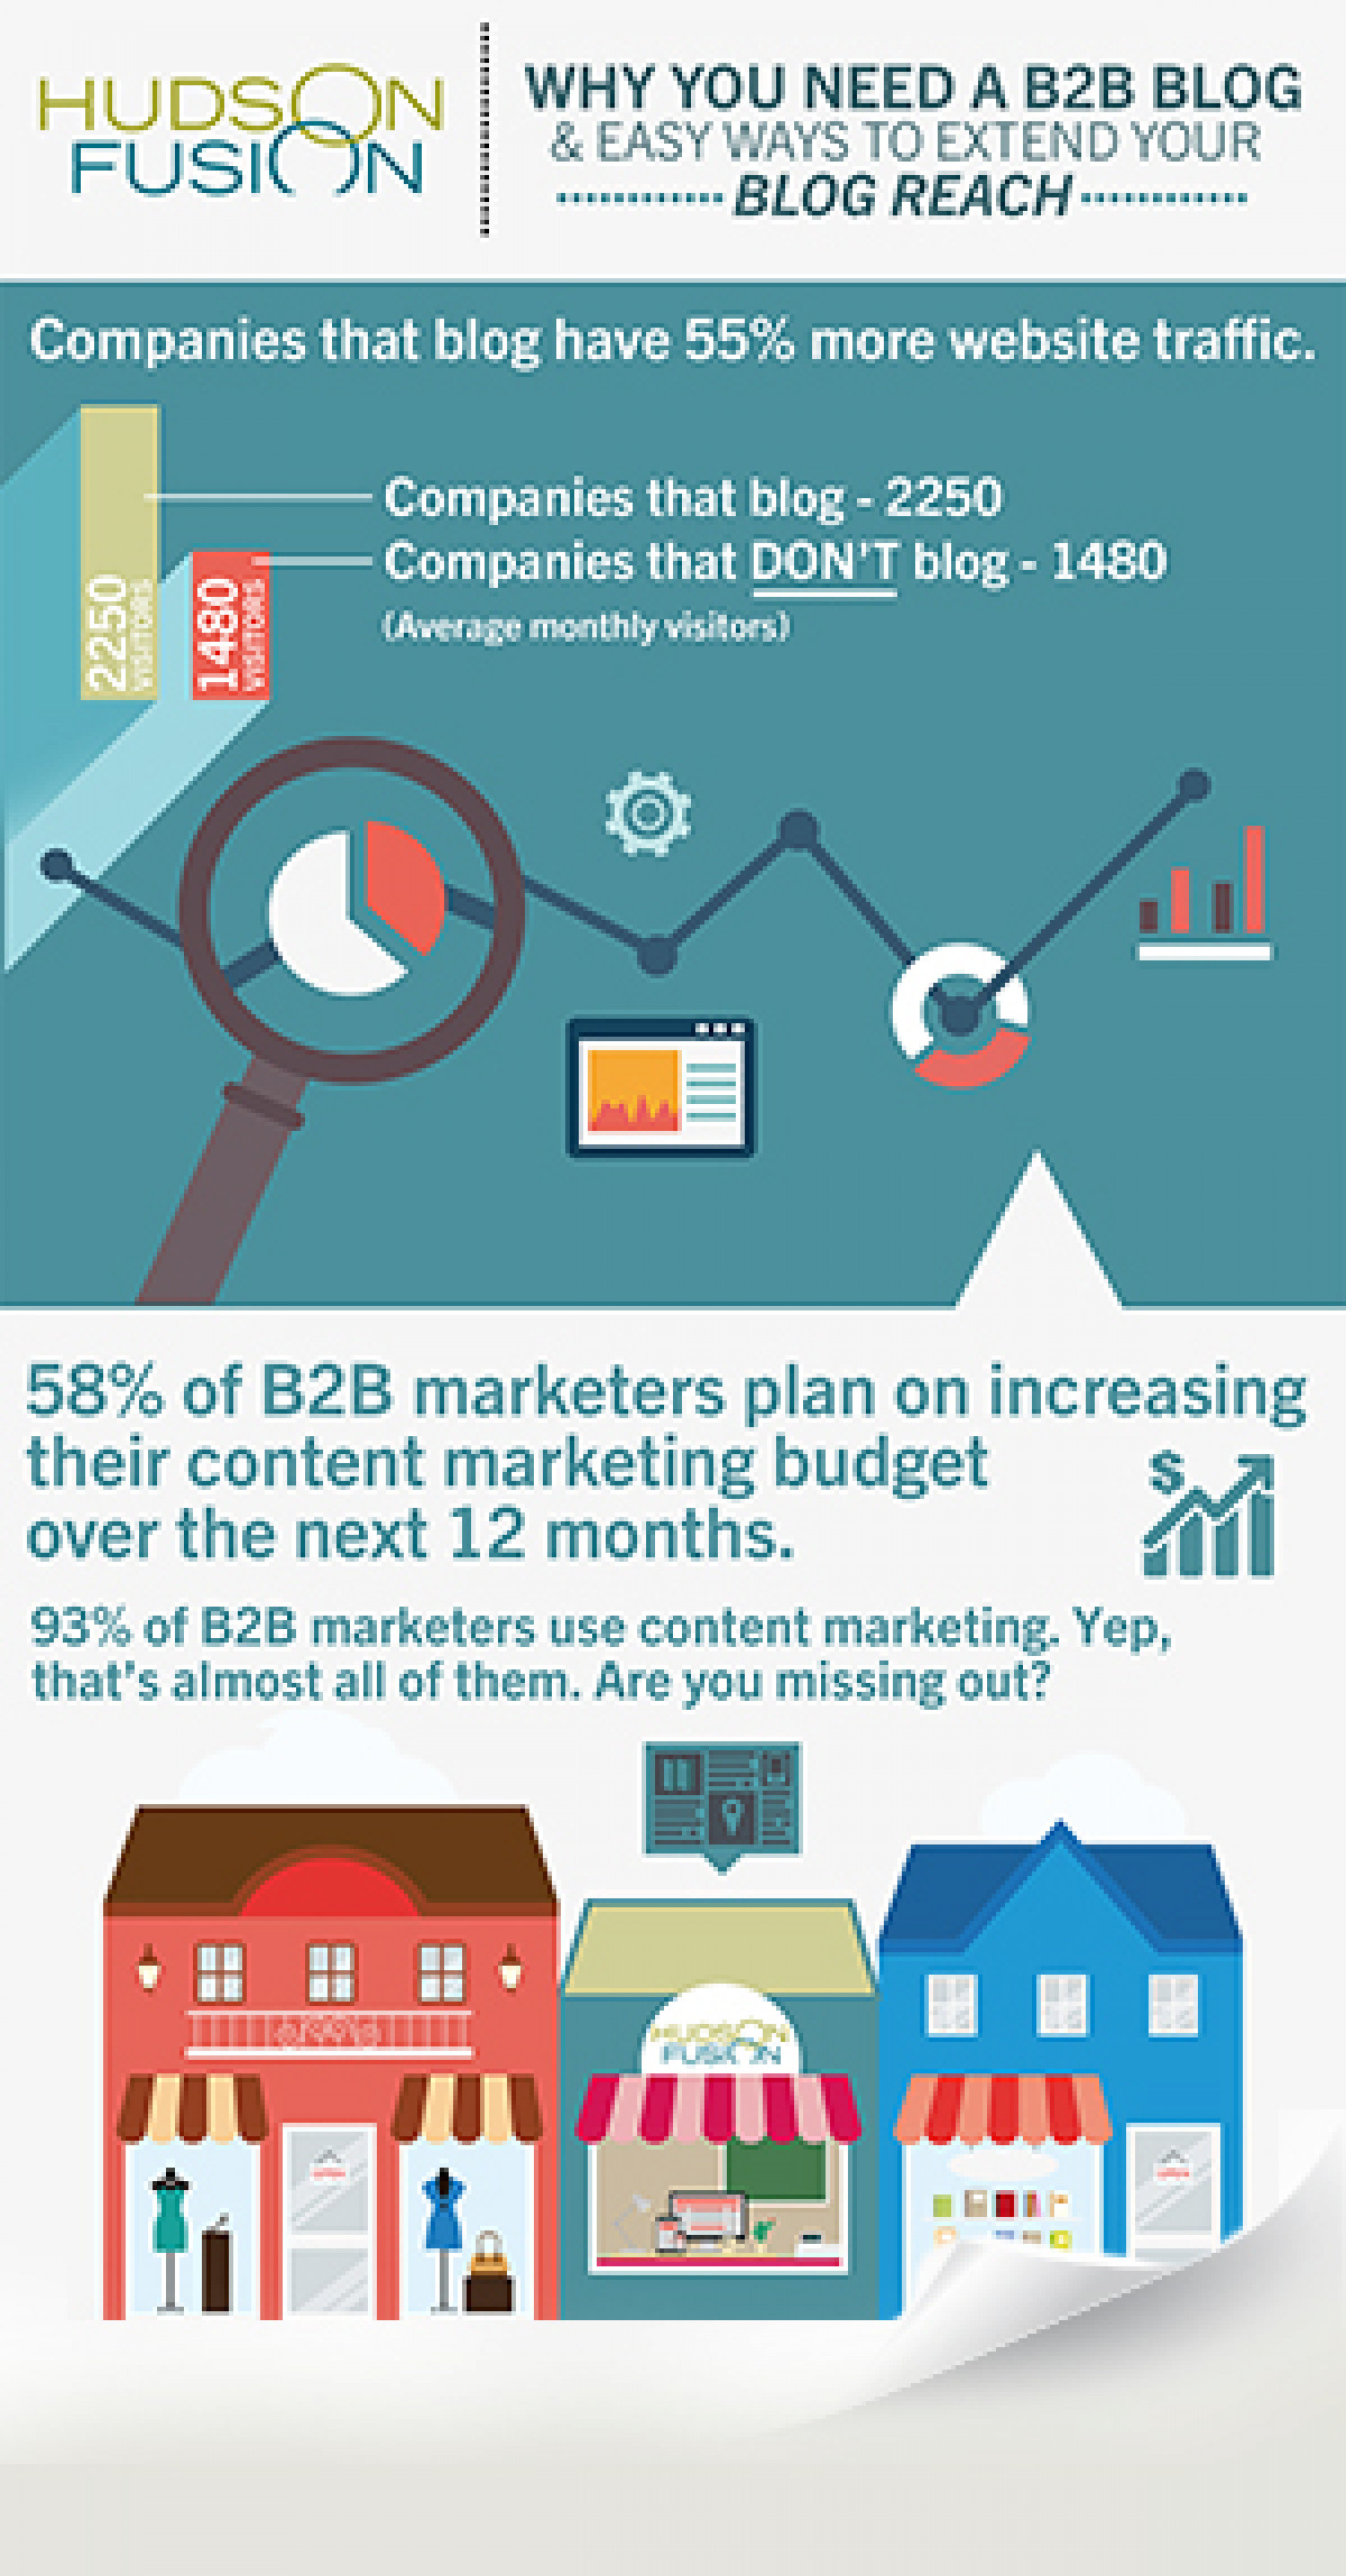 Why You Need a B2B Blog Infographic